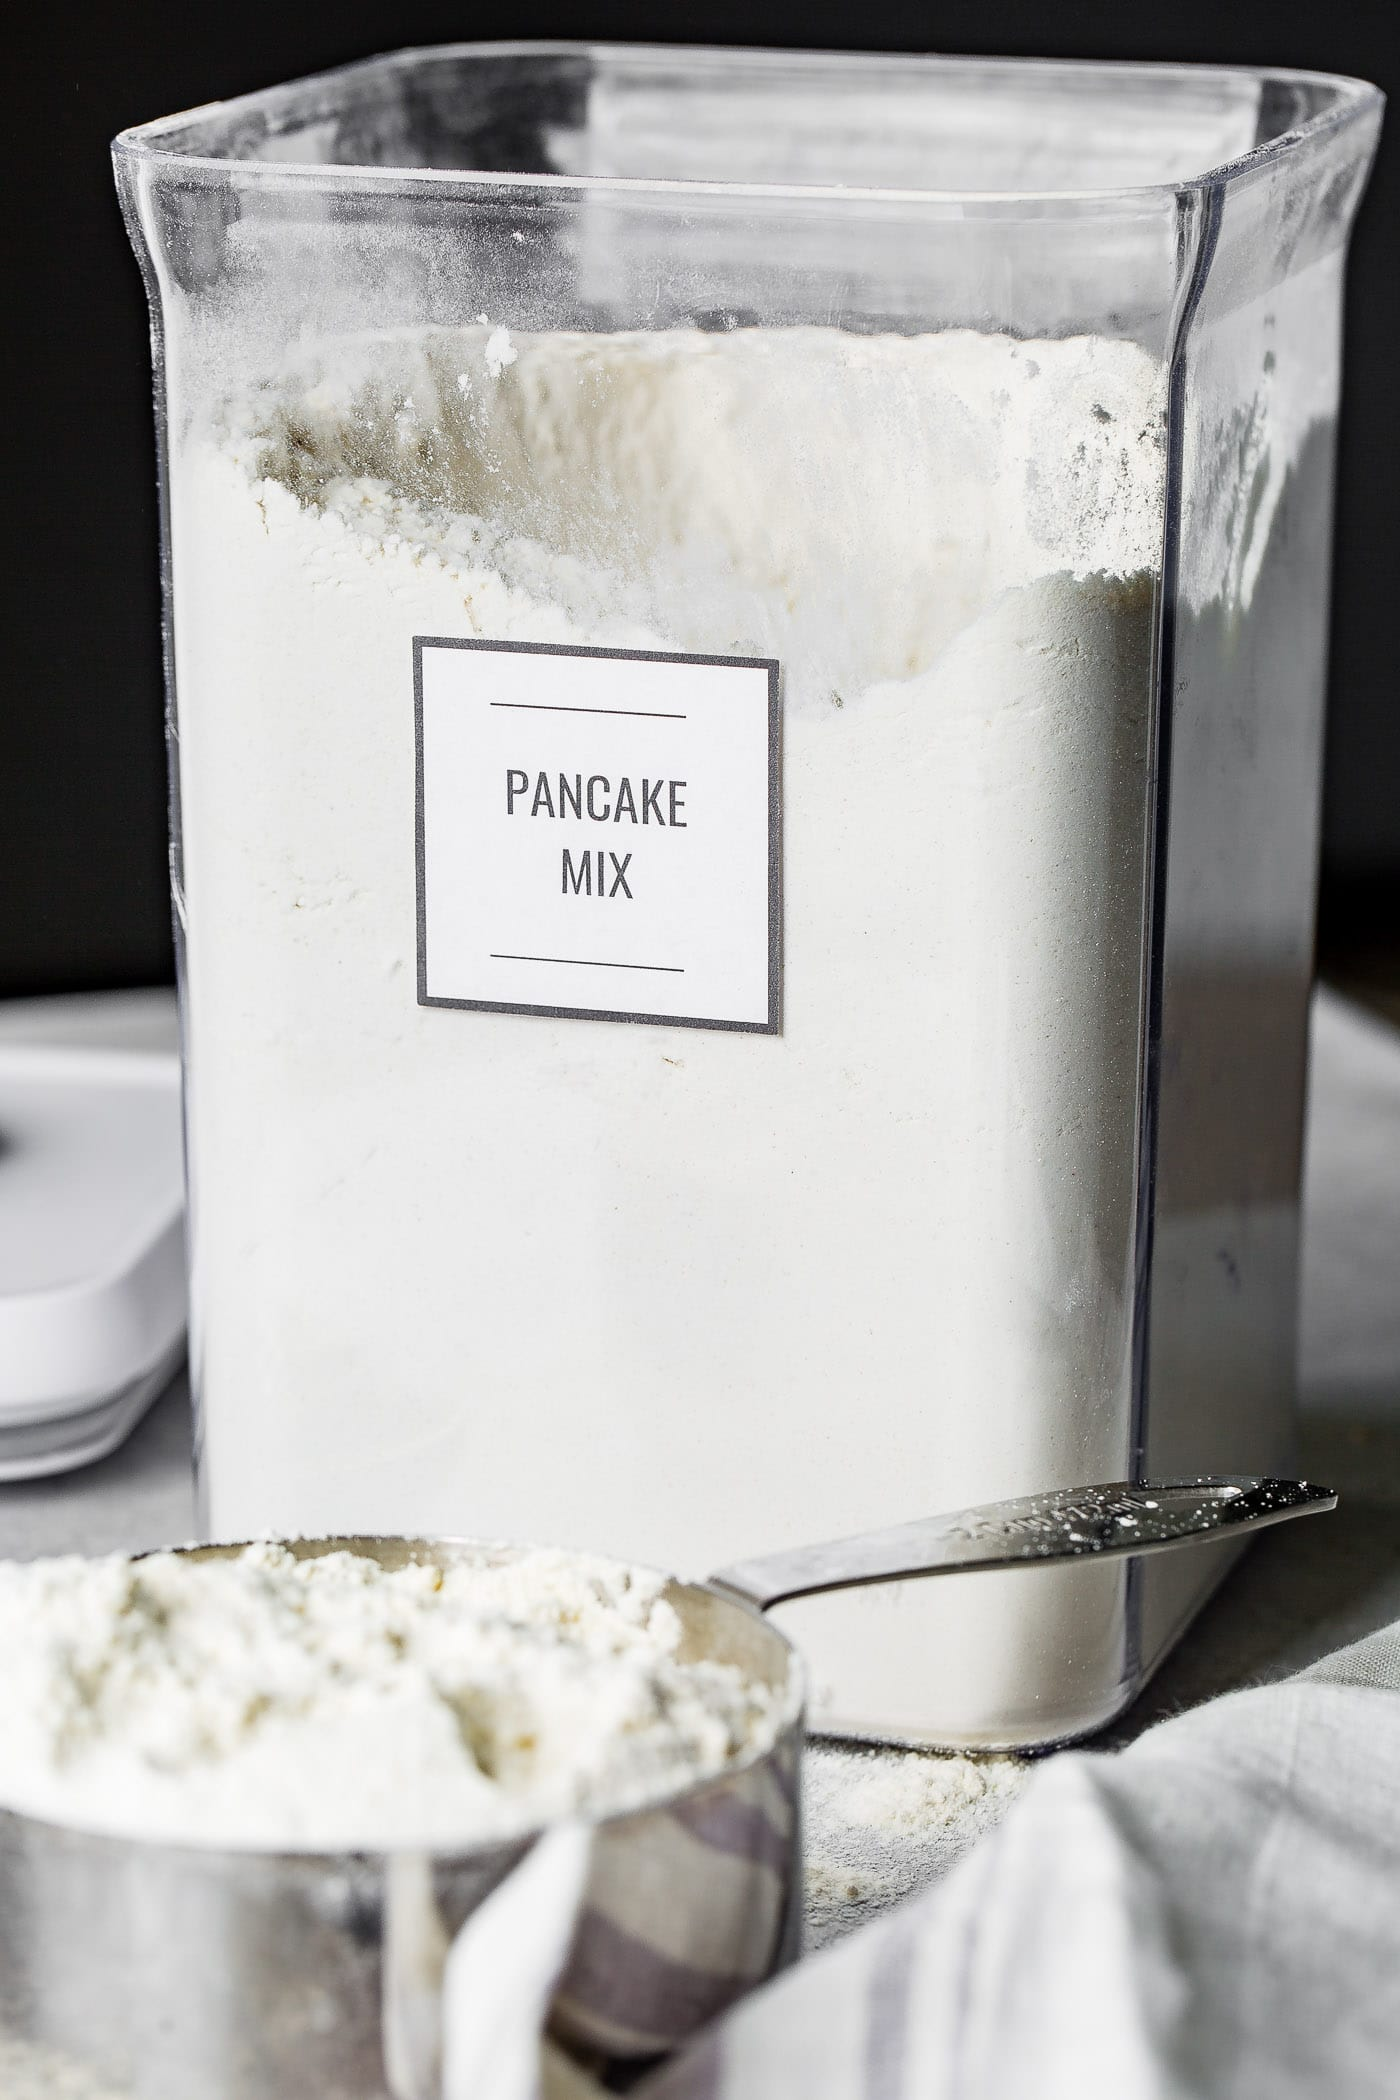 A clear canister containing buttermilk pancake mix. The lid to the canister is laying next to the canister, and a heaping cup of pancake mix is in front of the canister.